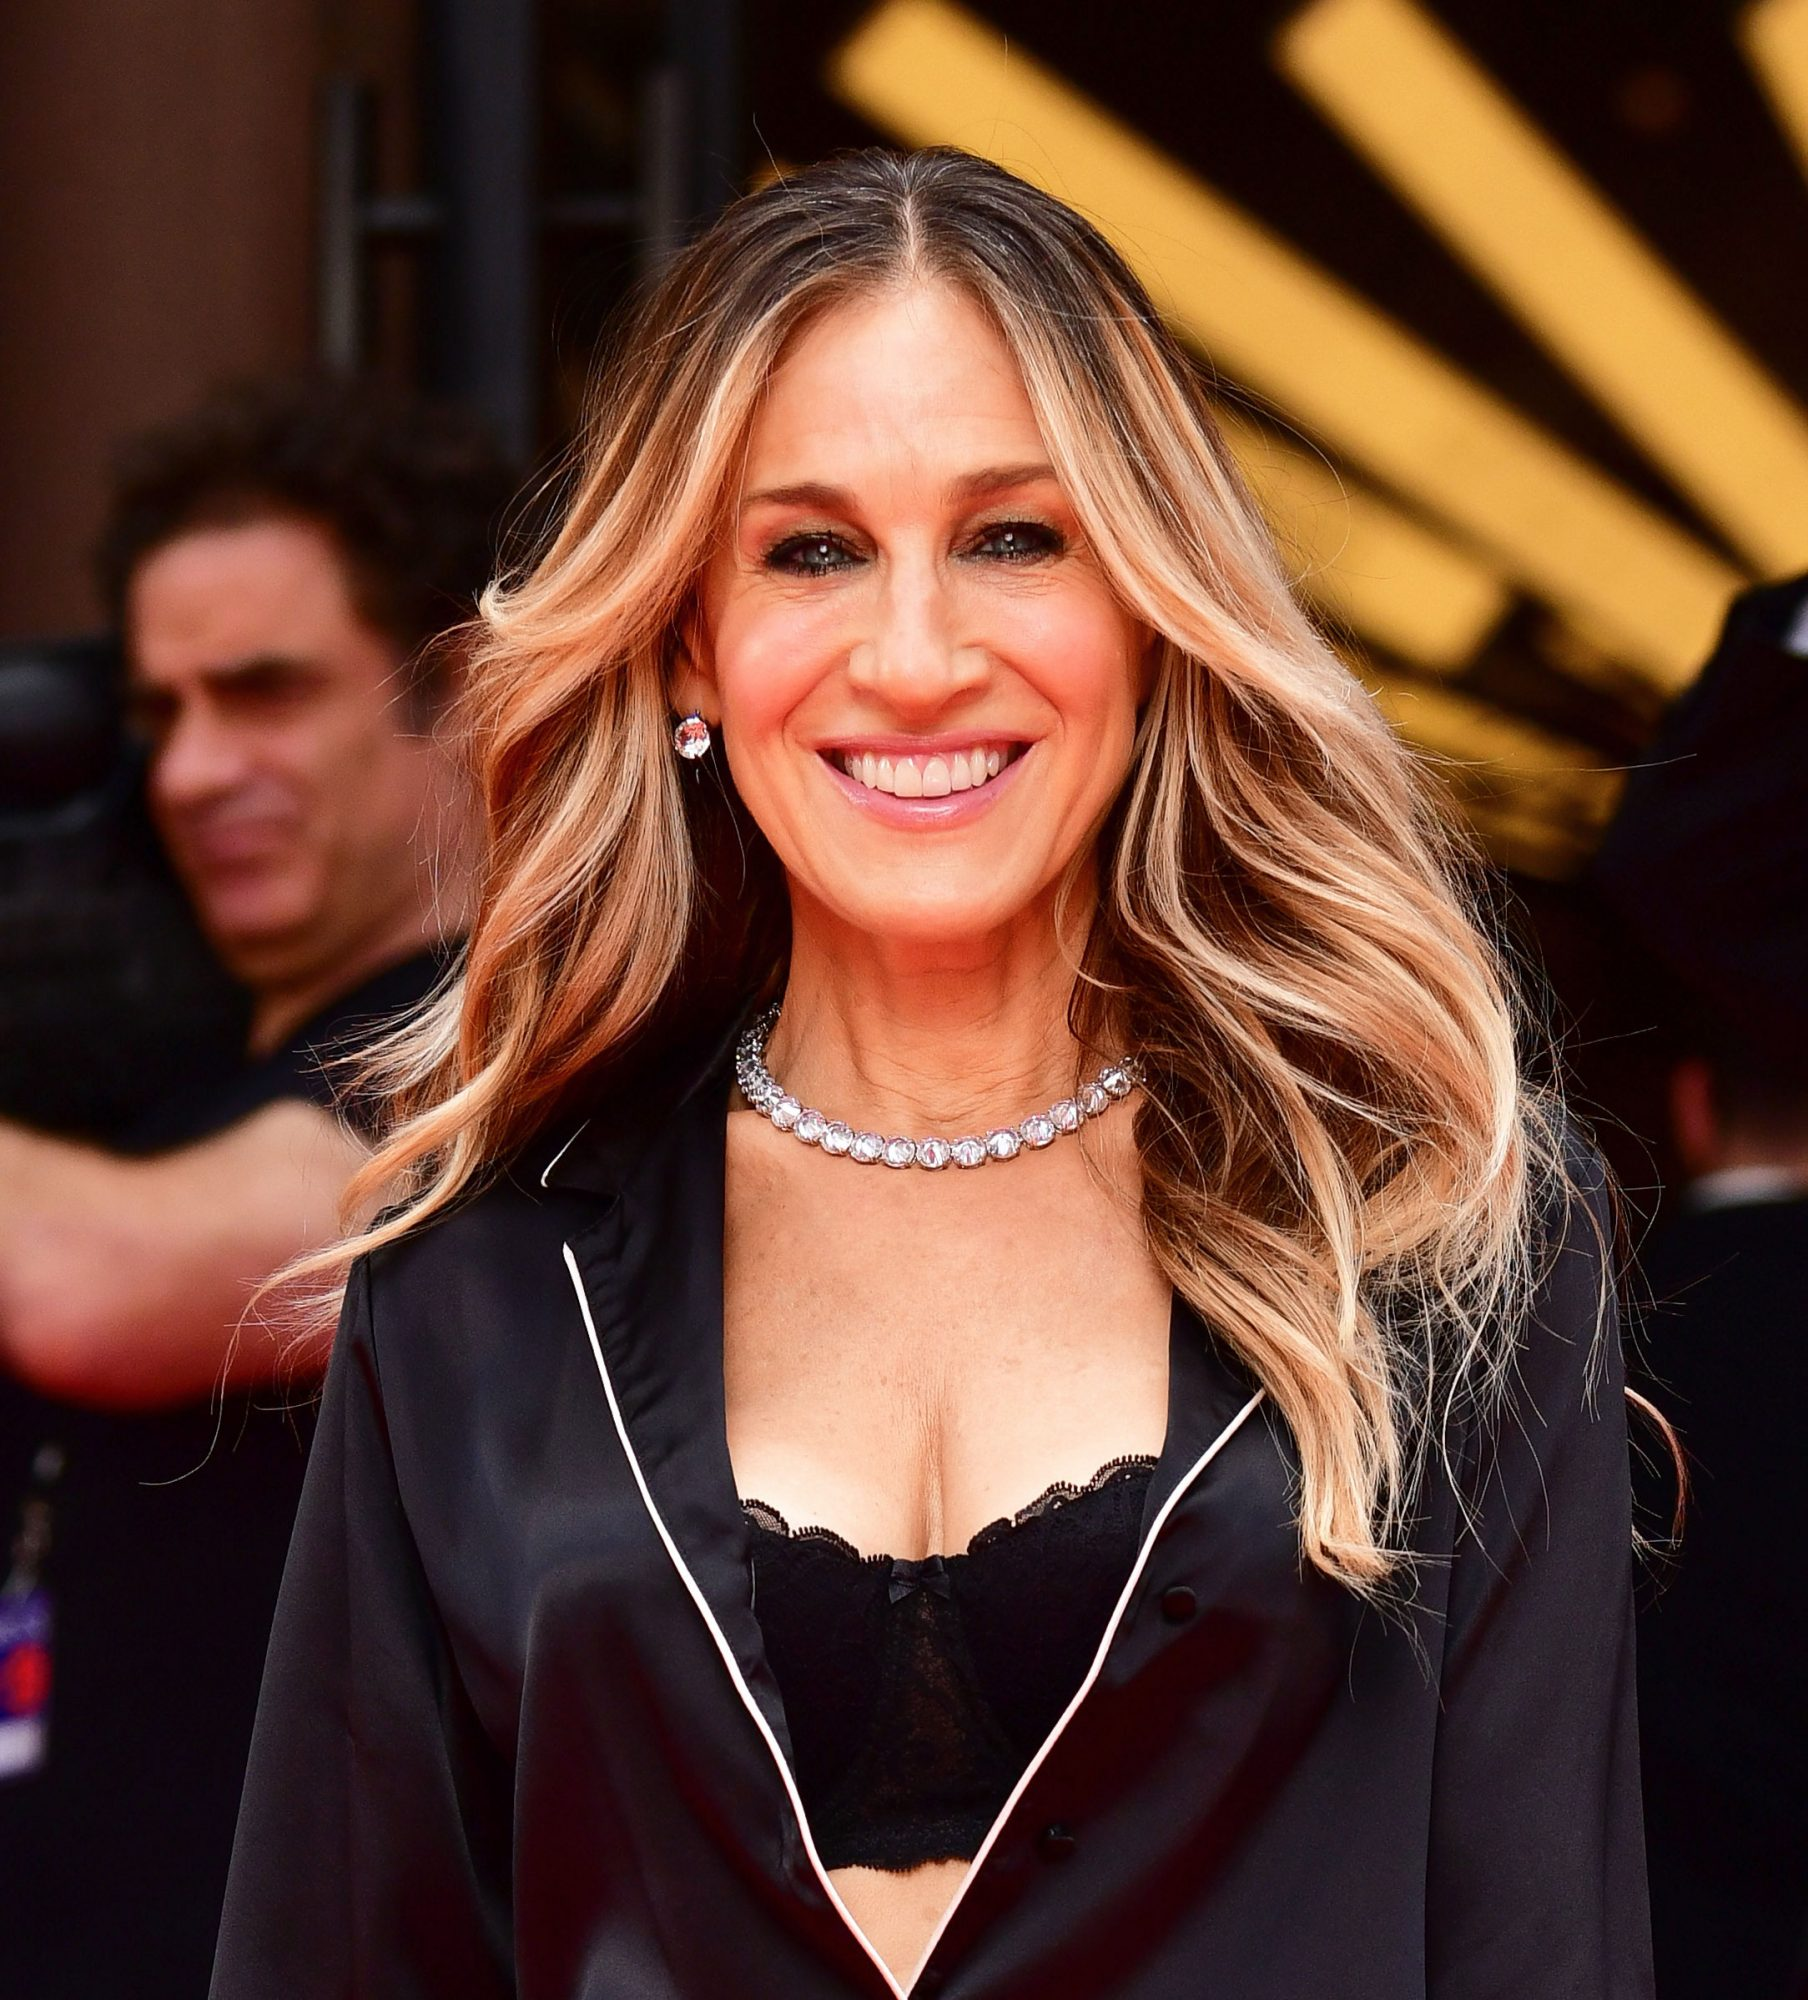 Sarah Jessica Parker Uses This $25 Hairspray for Extra Voluminous Hair